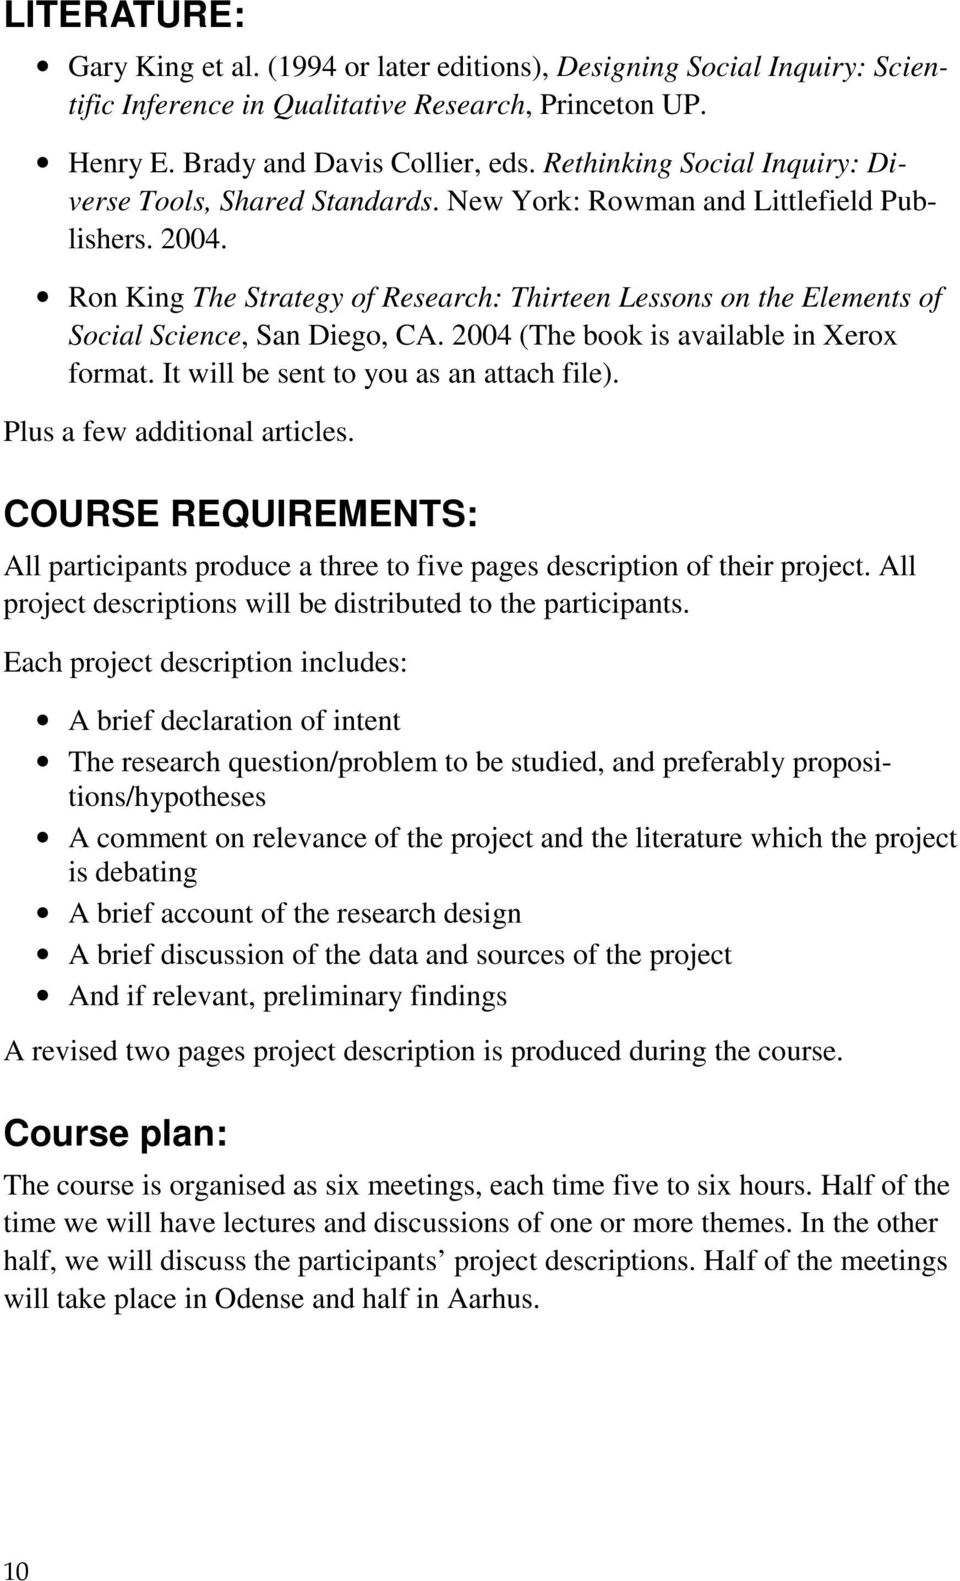 Ron King The Strategy of Research: Thirteen Lessons on the Elements of Social Science, San Diego, CA. 2004 (The book is available in Xerox format. It will be sent to you as an attach file).